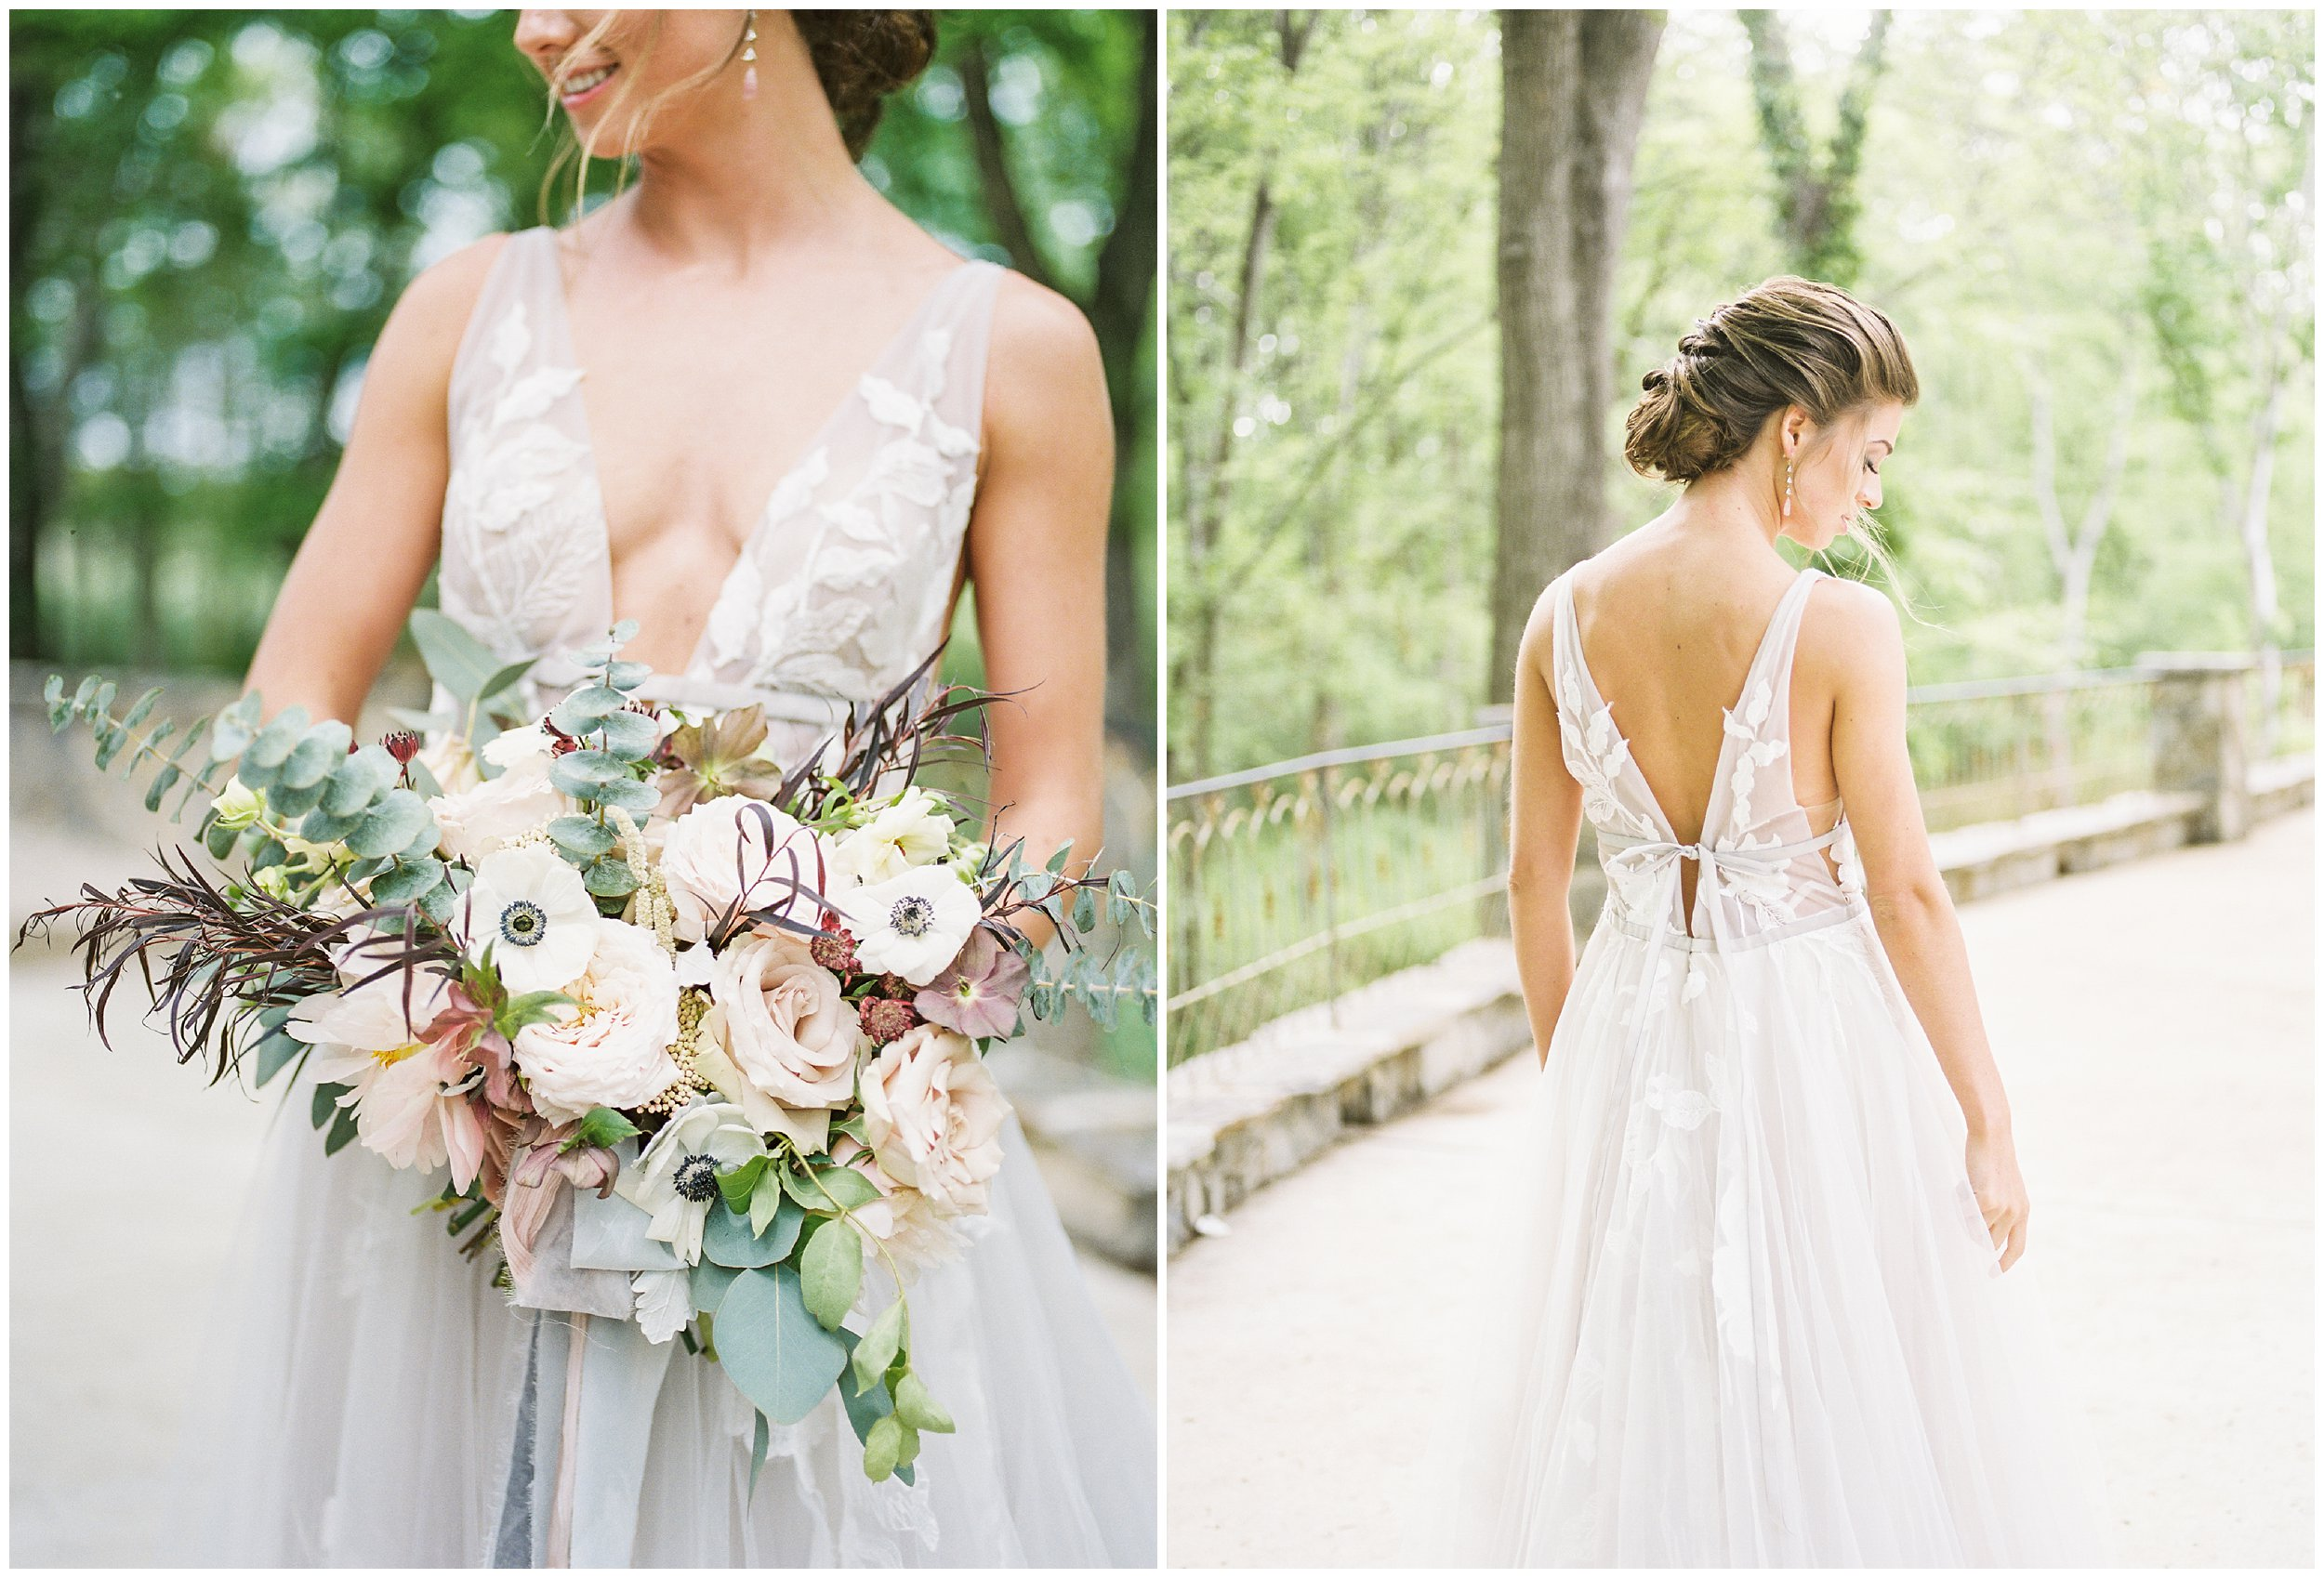 details of bride's bouquet and gorgeous wedding gown